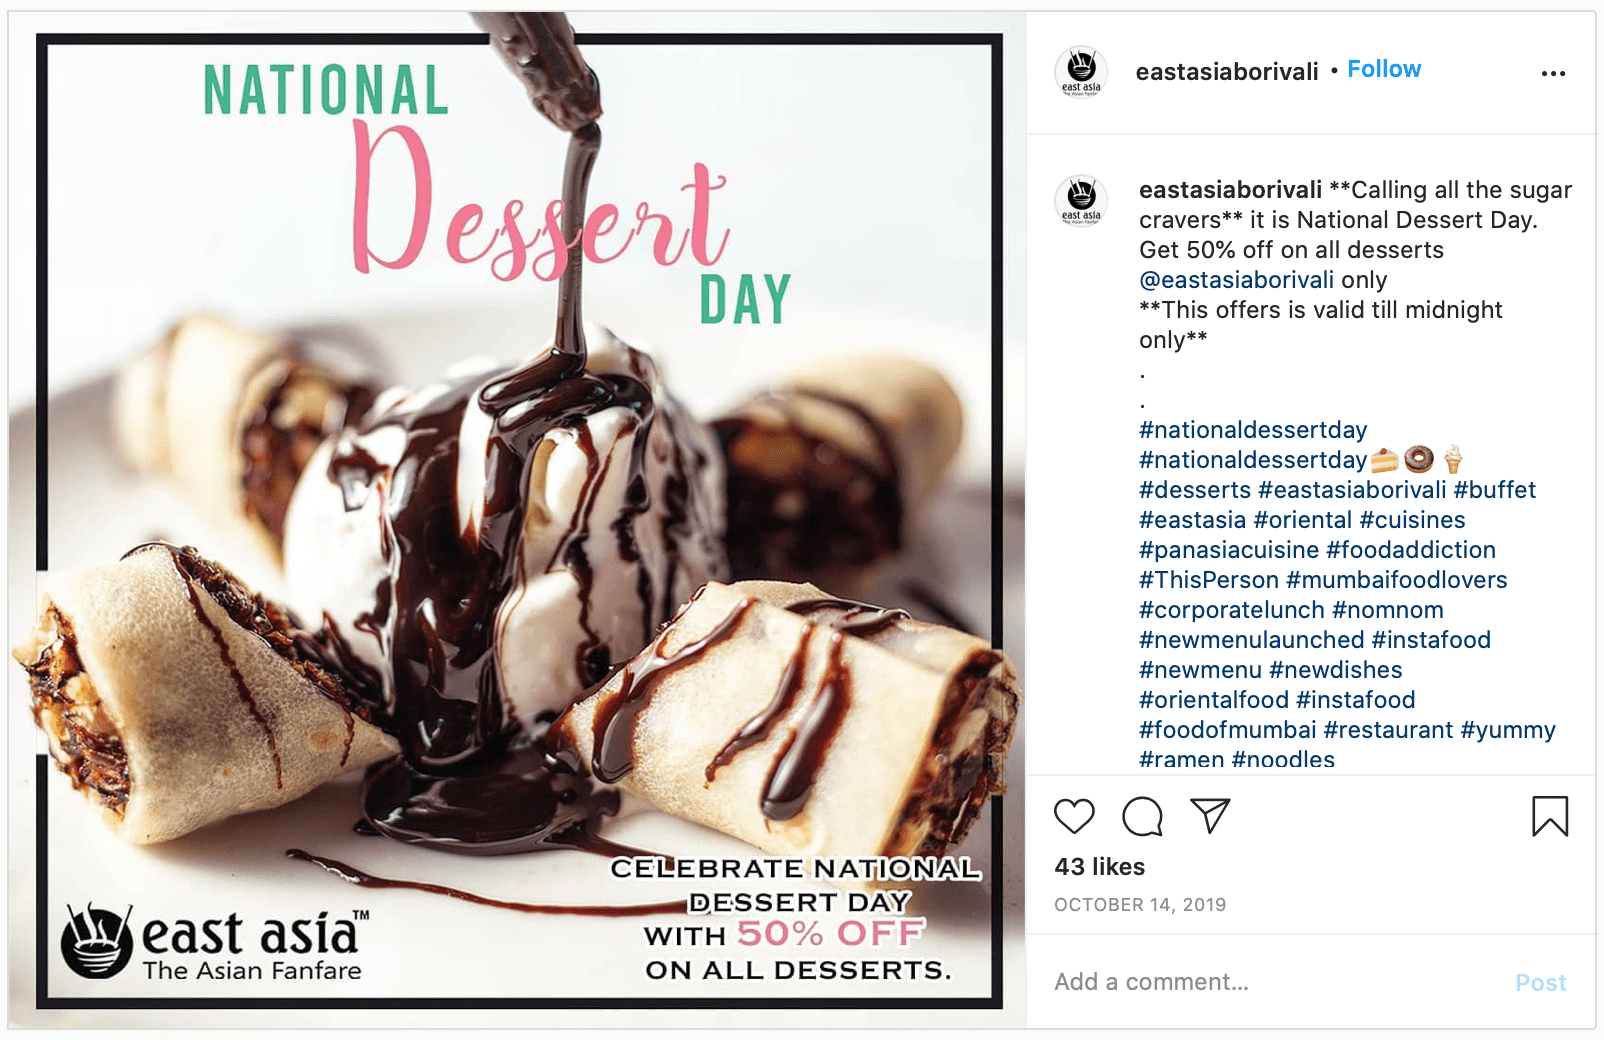 national dessert day discount